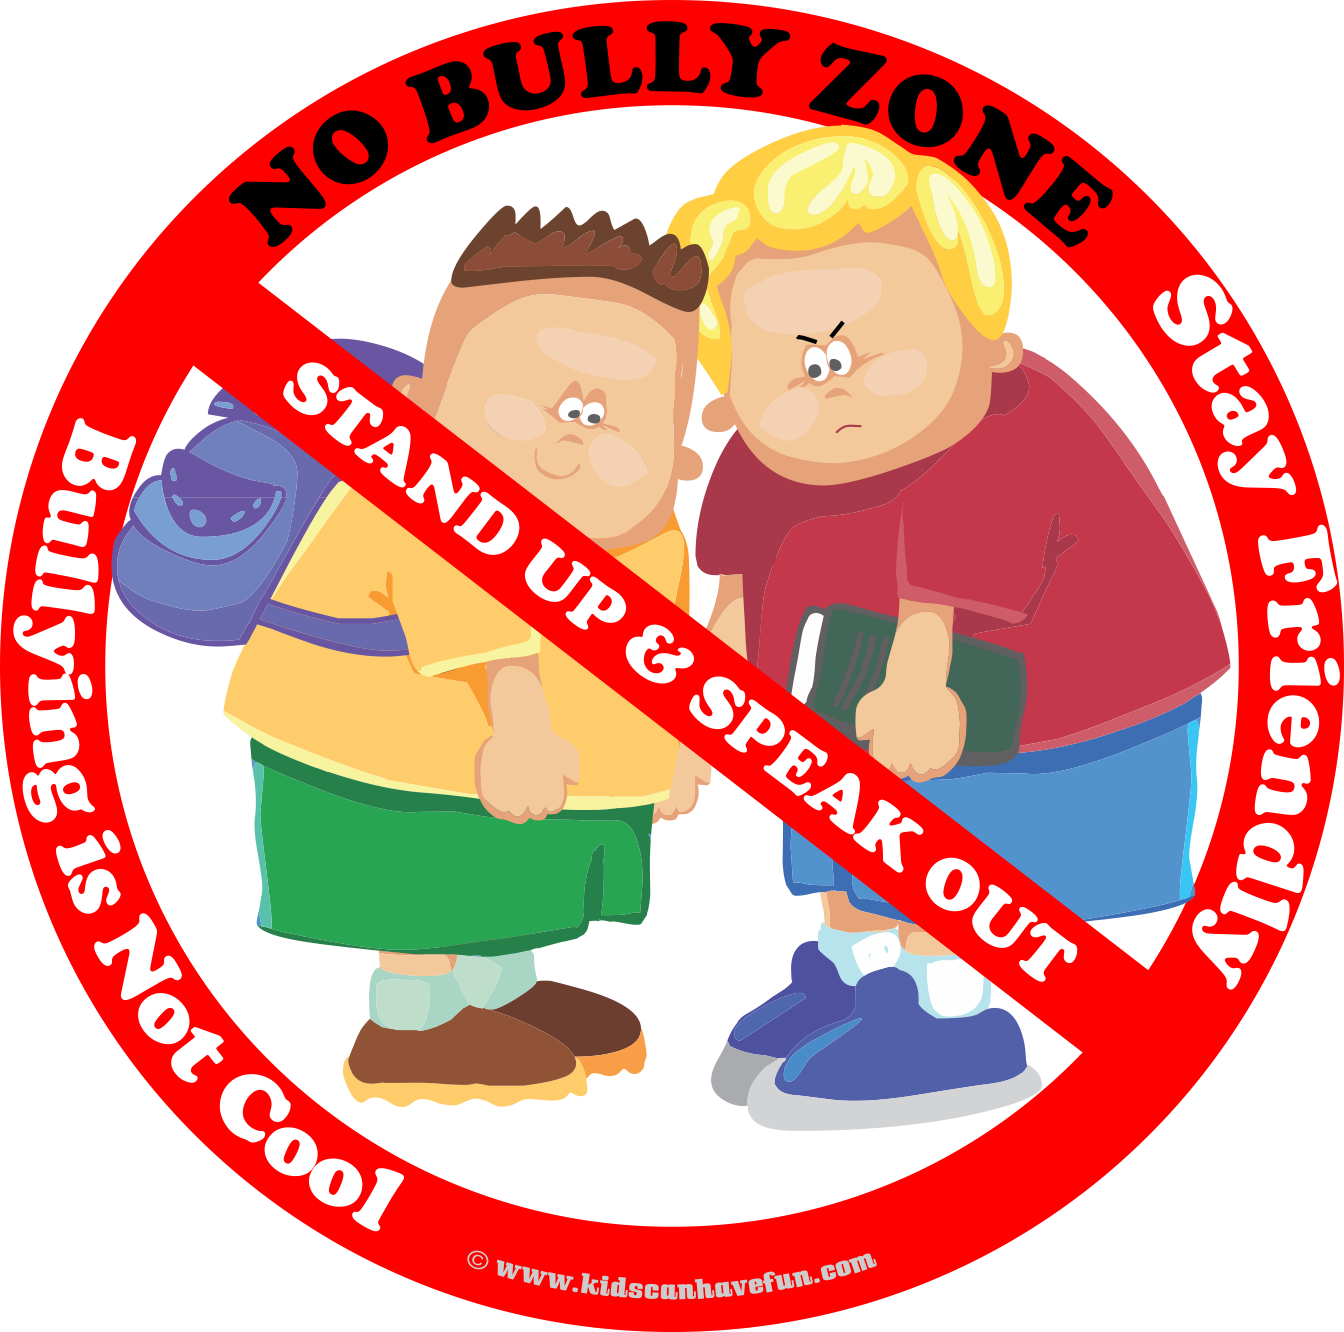 No Bully Zone Poster To Hang Up At School Home Or Daycare